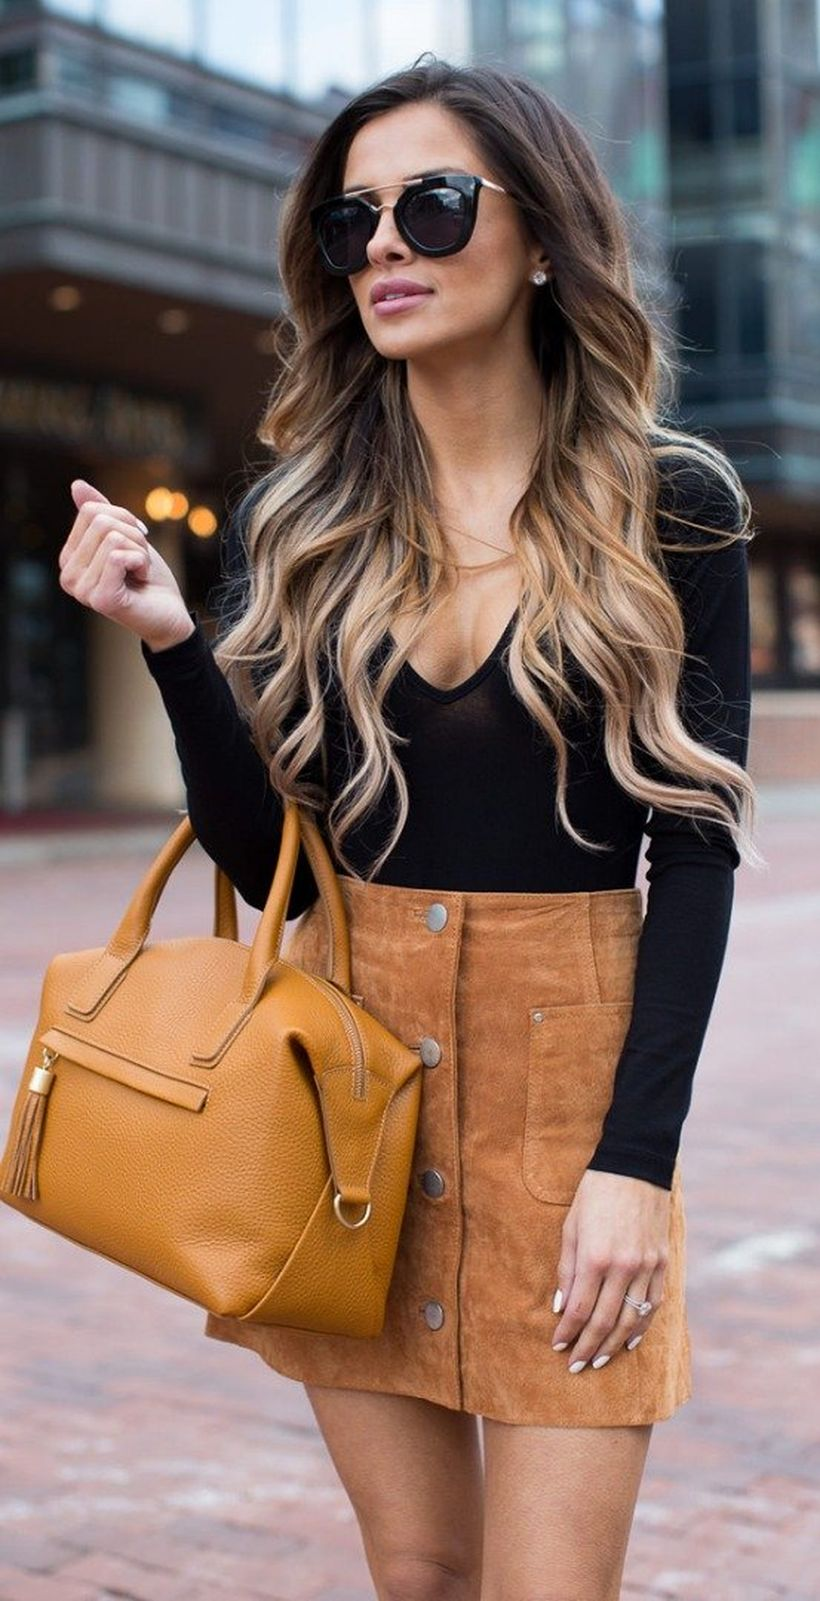 Best casual fall night outfits ideas for going out 81 ...